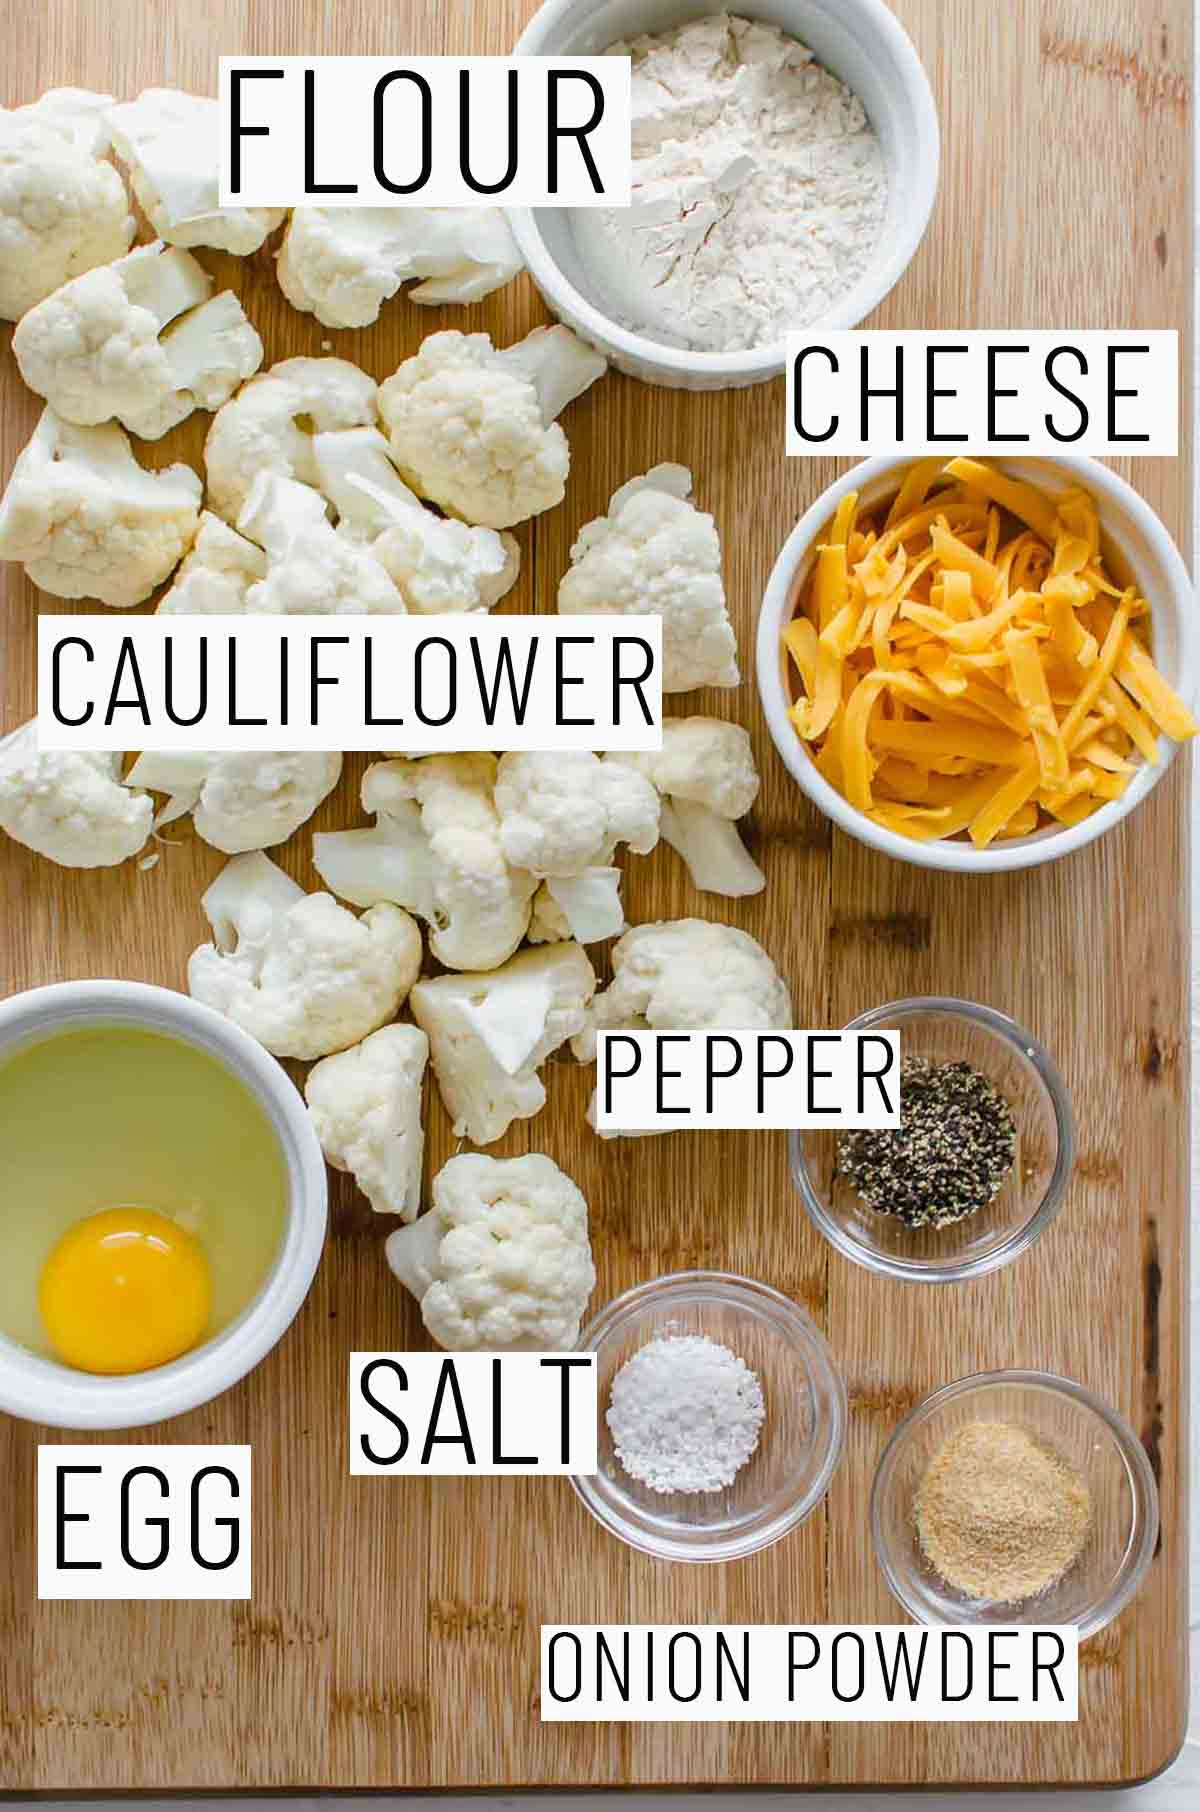 Flat lay image of recipe portioned ingredients including cauliflower, flour, egg, cheese, and seasonings.